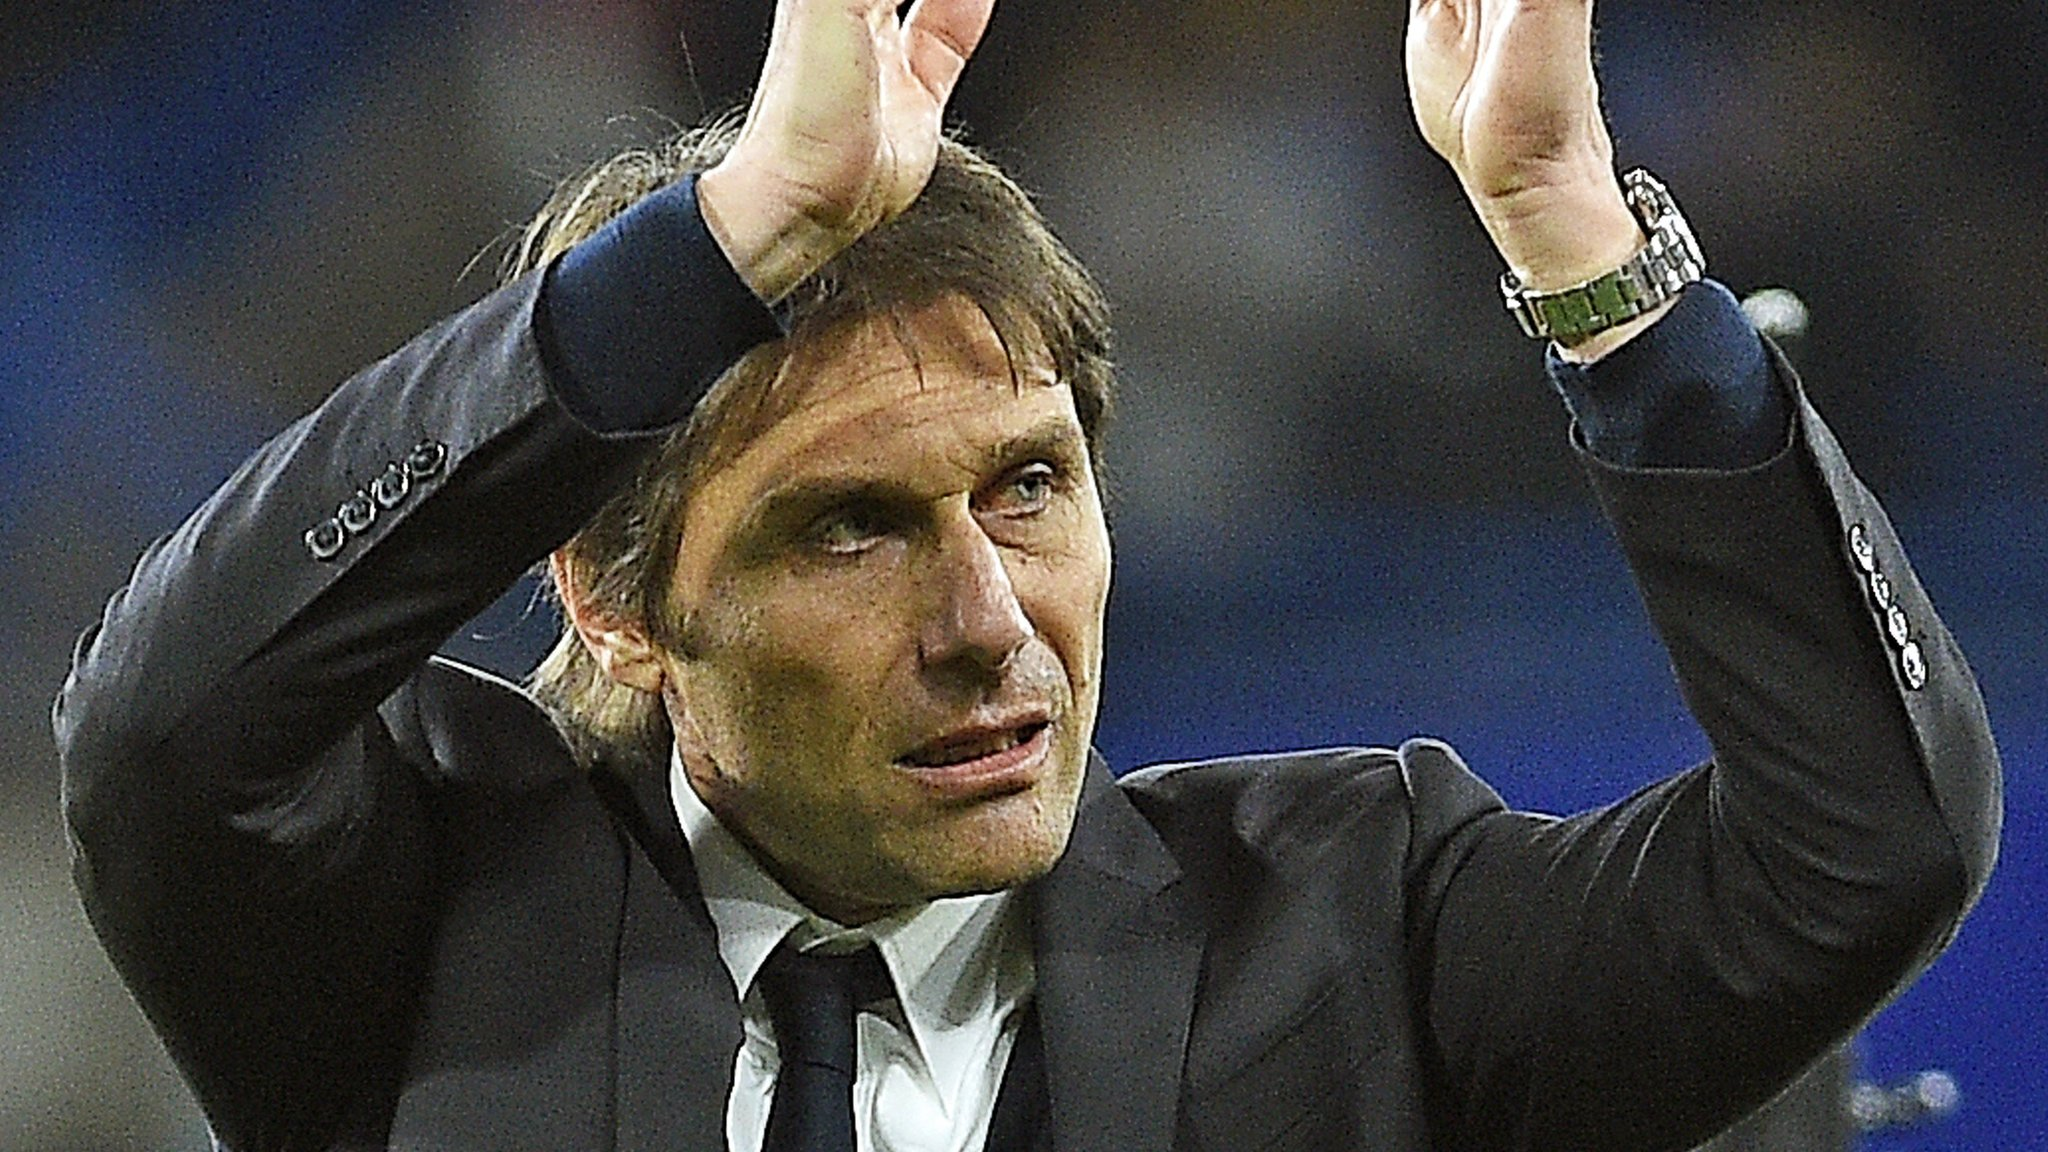 'I'm happy to stay at Chelsea' - Conte dismisses Inter reports